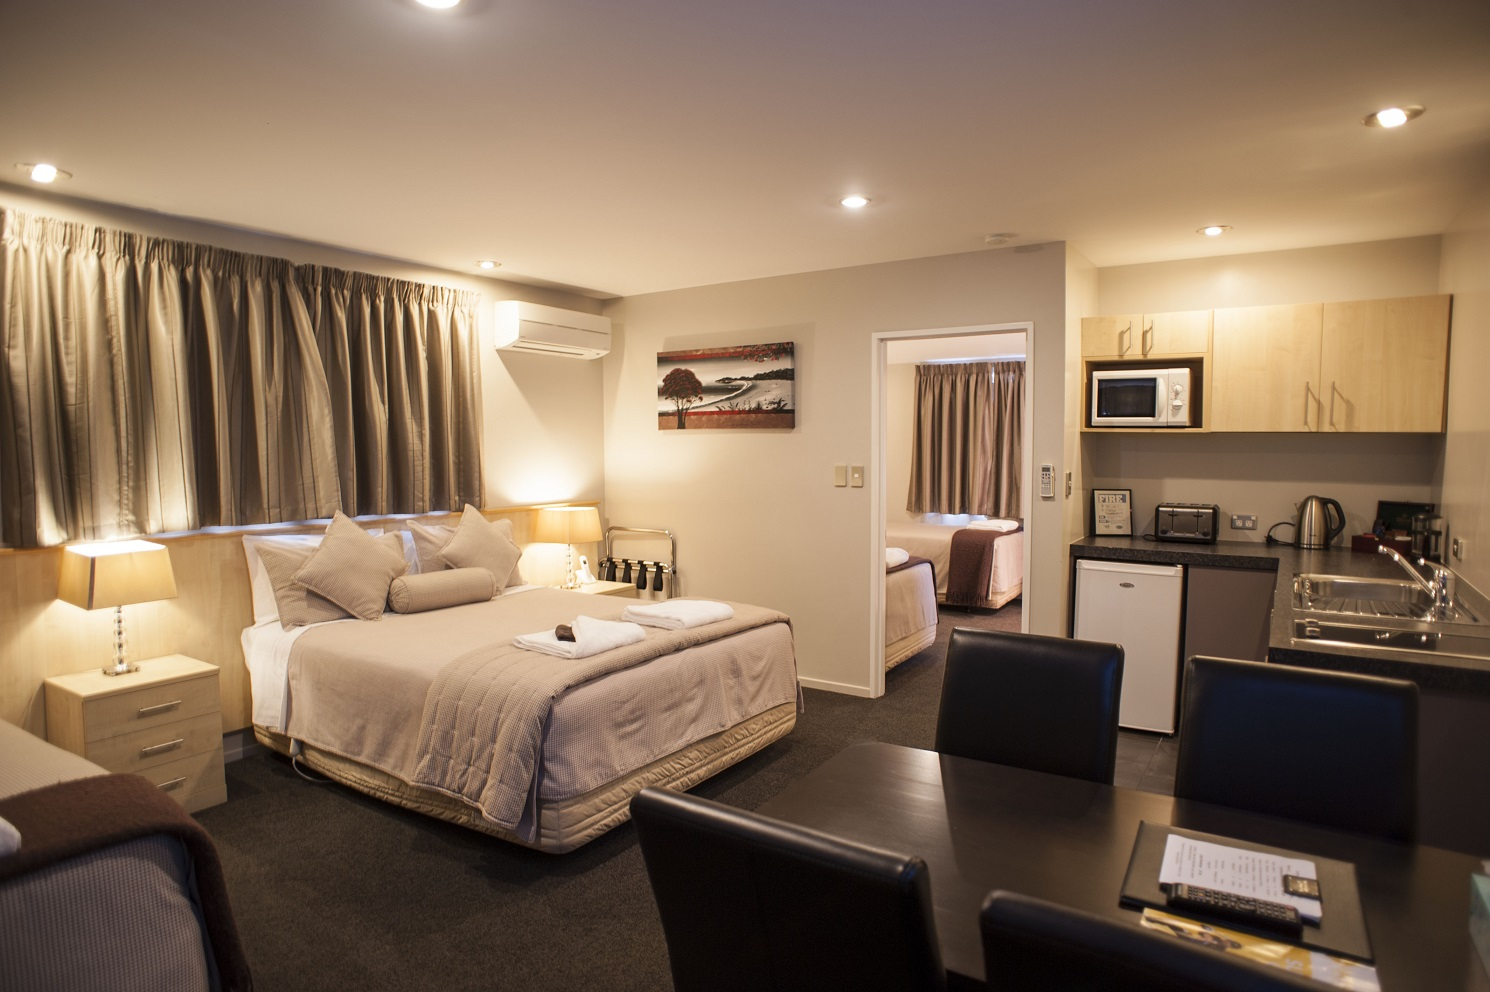 One Bedroom Apartment Decorating Ideas Christchurch Luxury Apartment Qualmark 5 Star 1 Bedroom